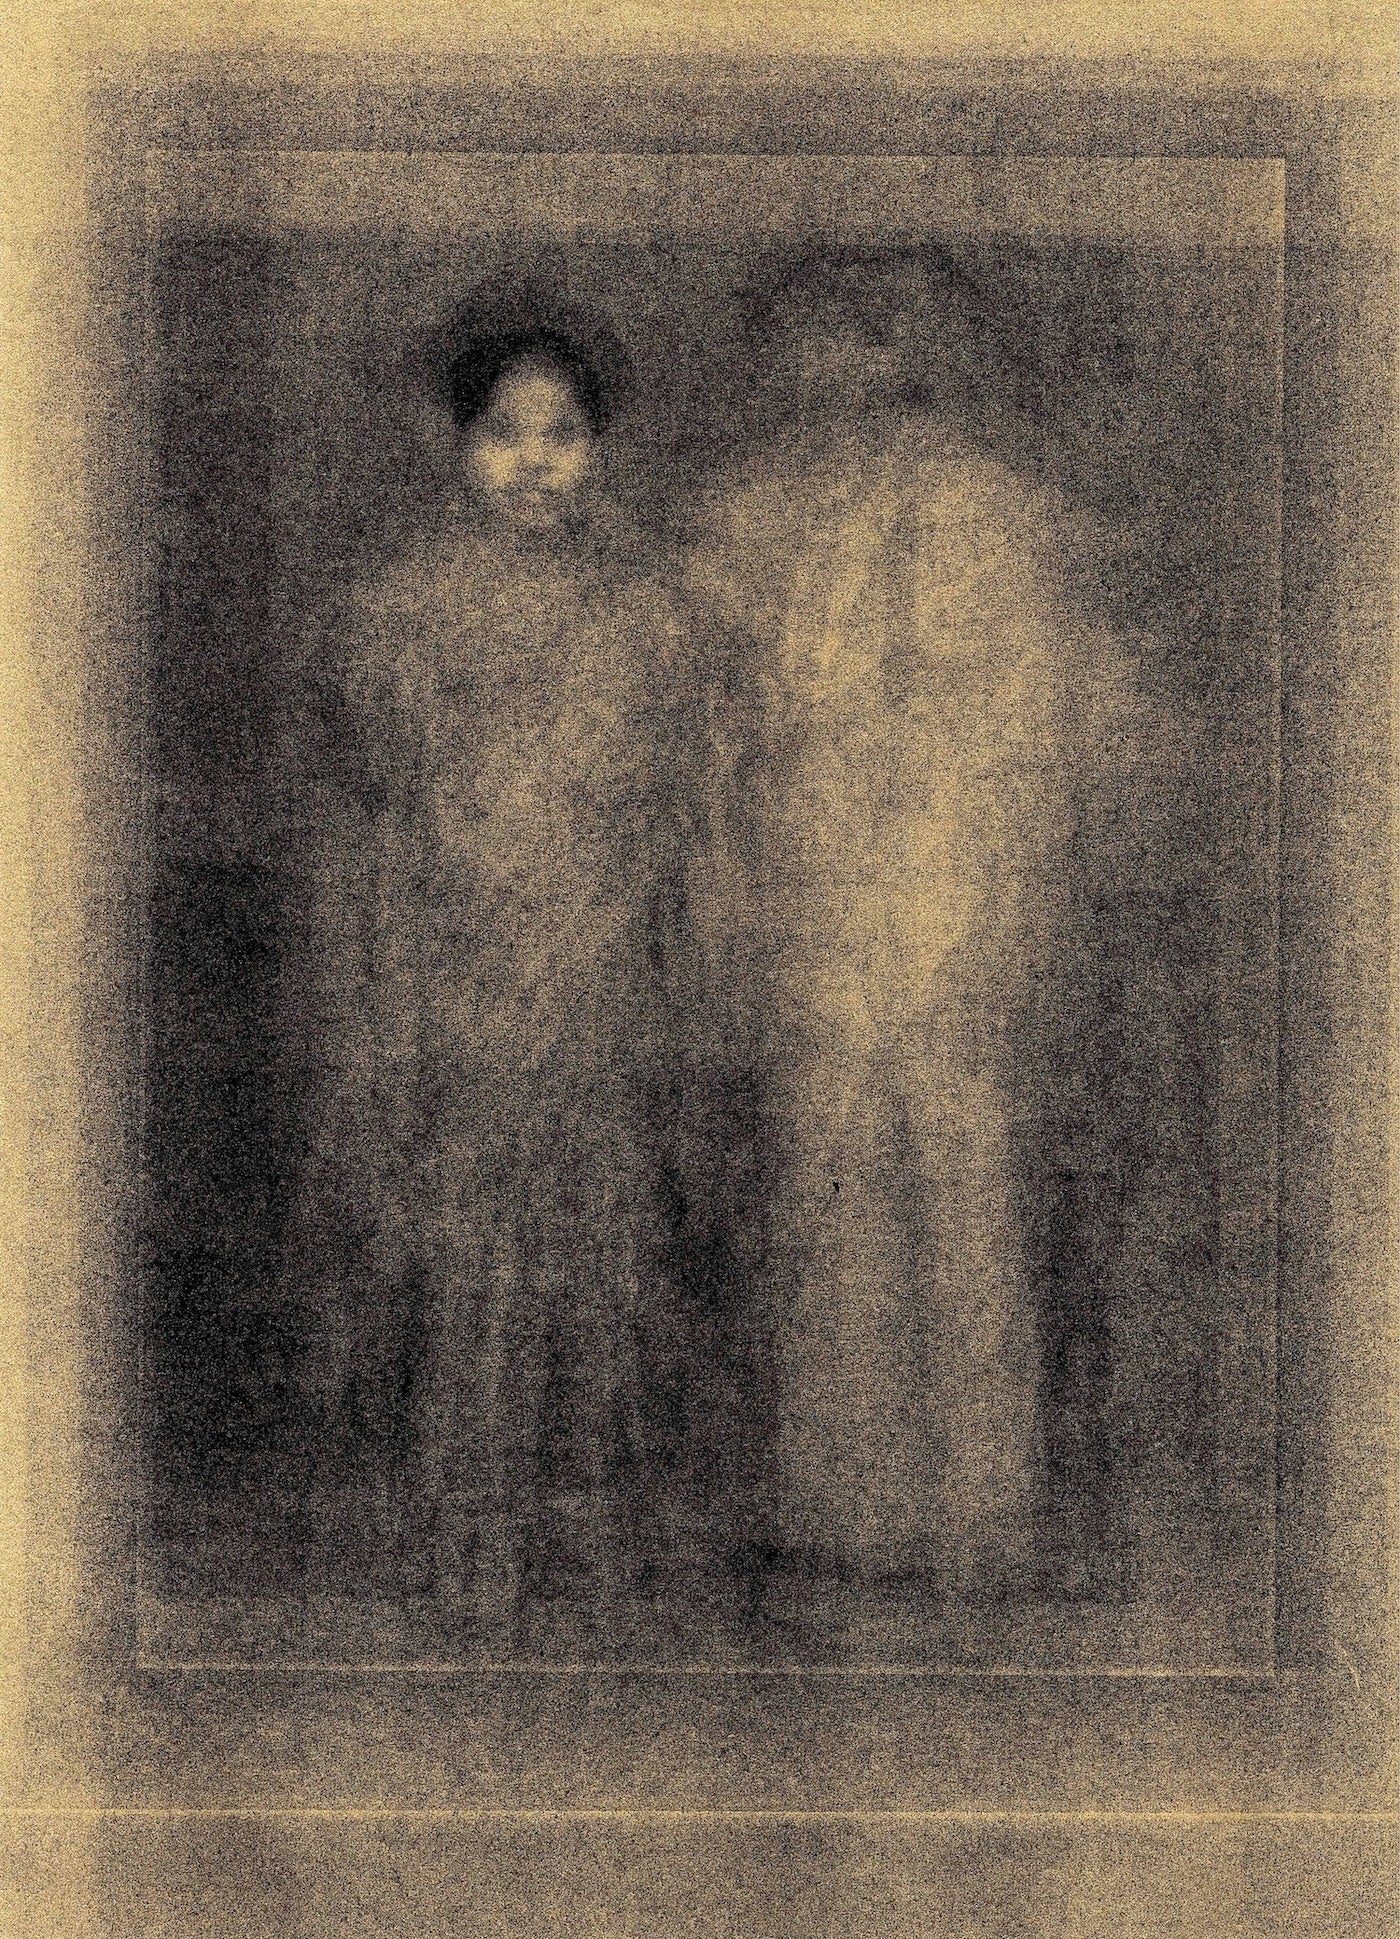 Image of After Image - Couple Standing